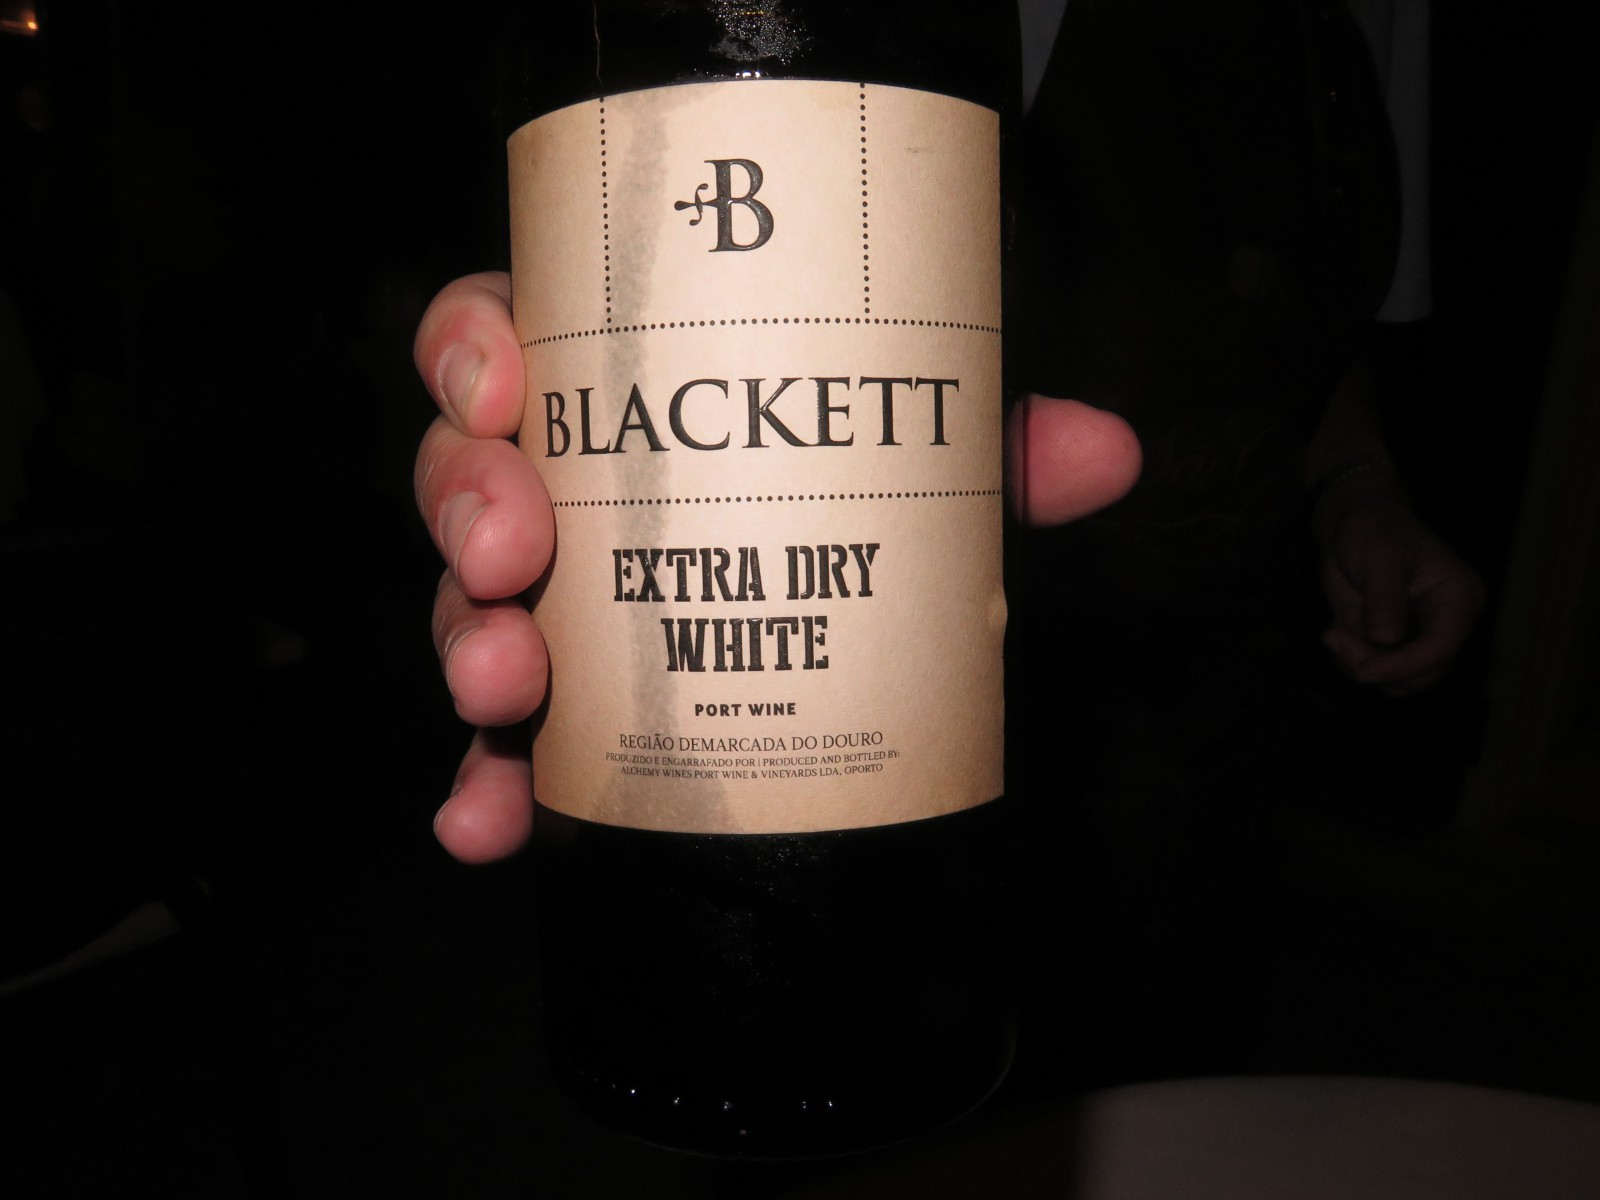 Blackett Extra Dry White Port Wine